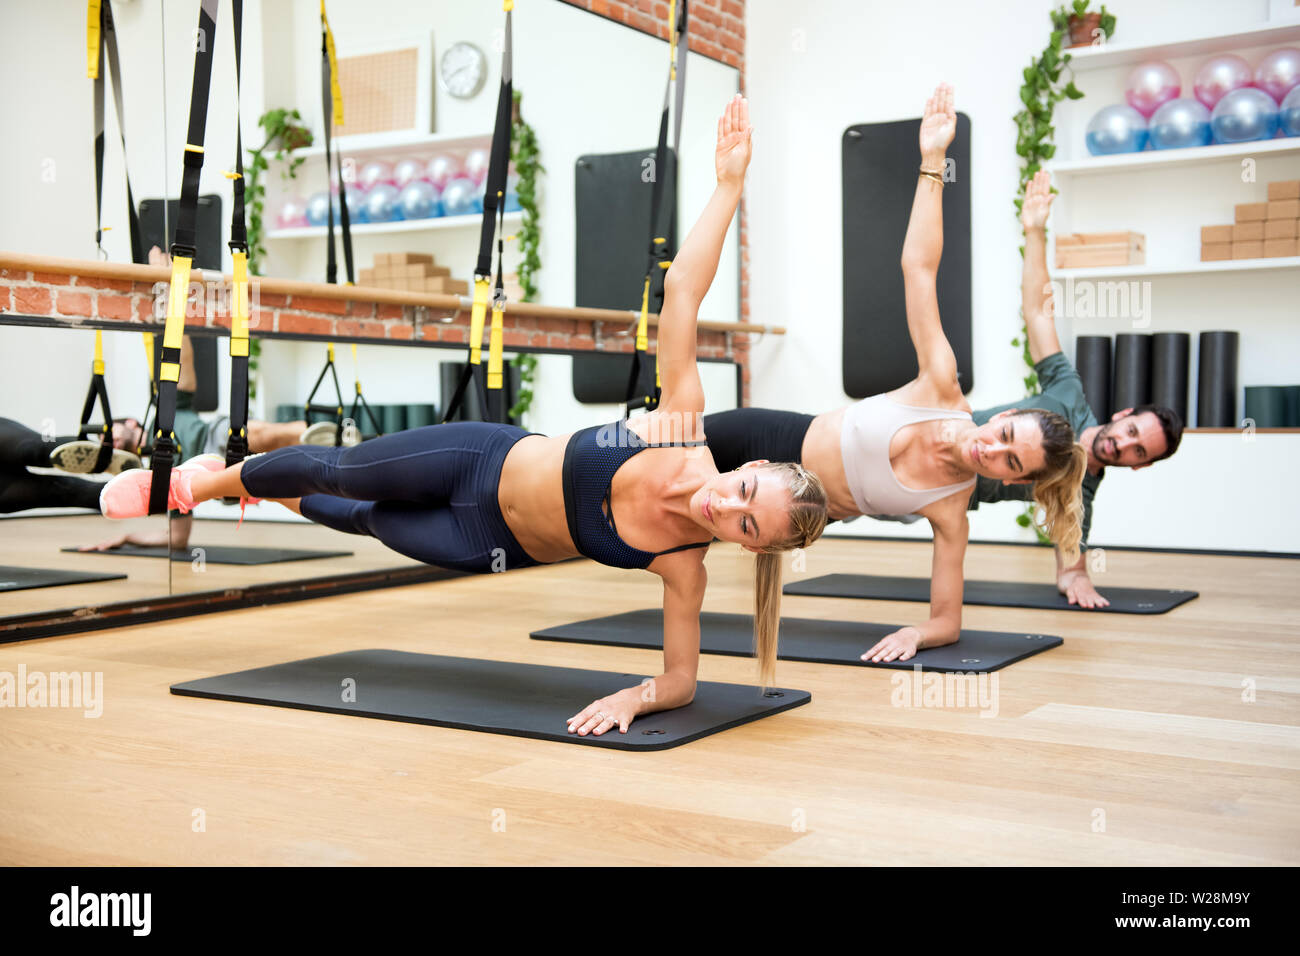 Three people exercising suspended elbow side planks using trx at gym - Stock Image